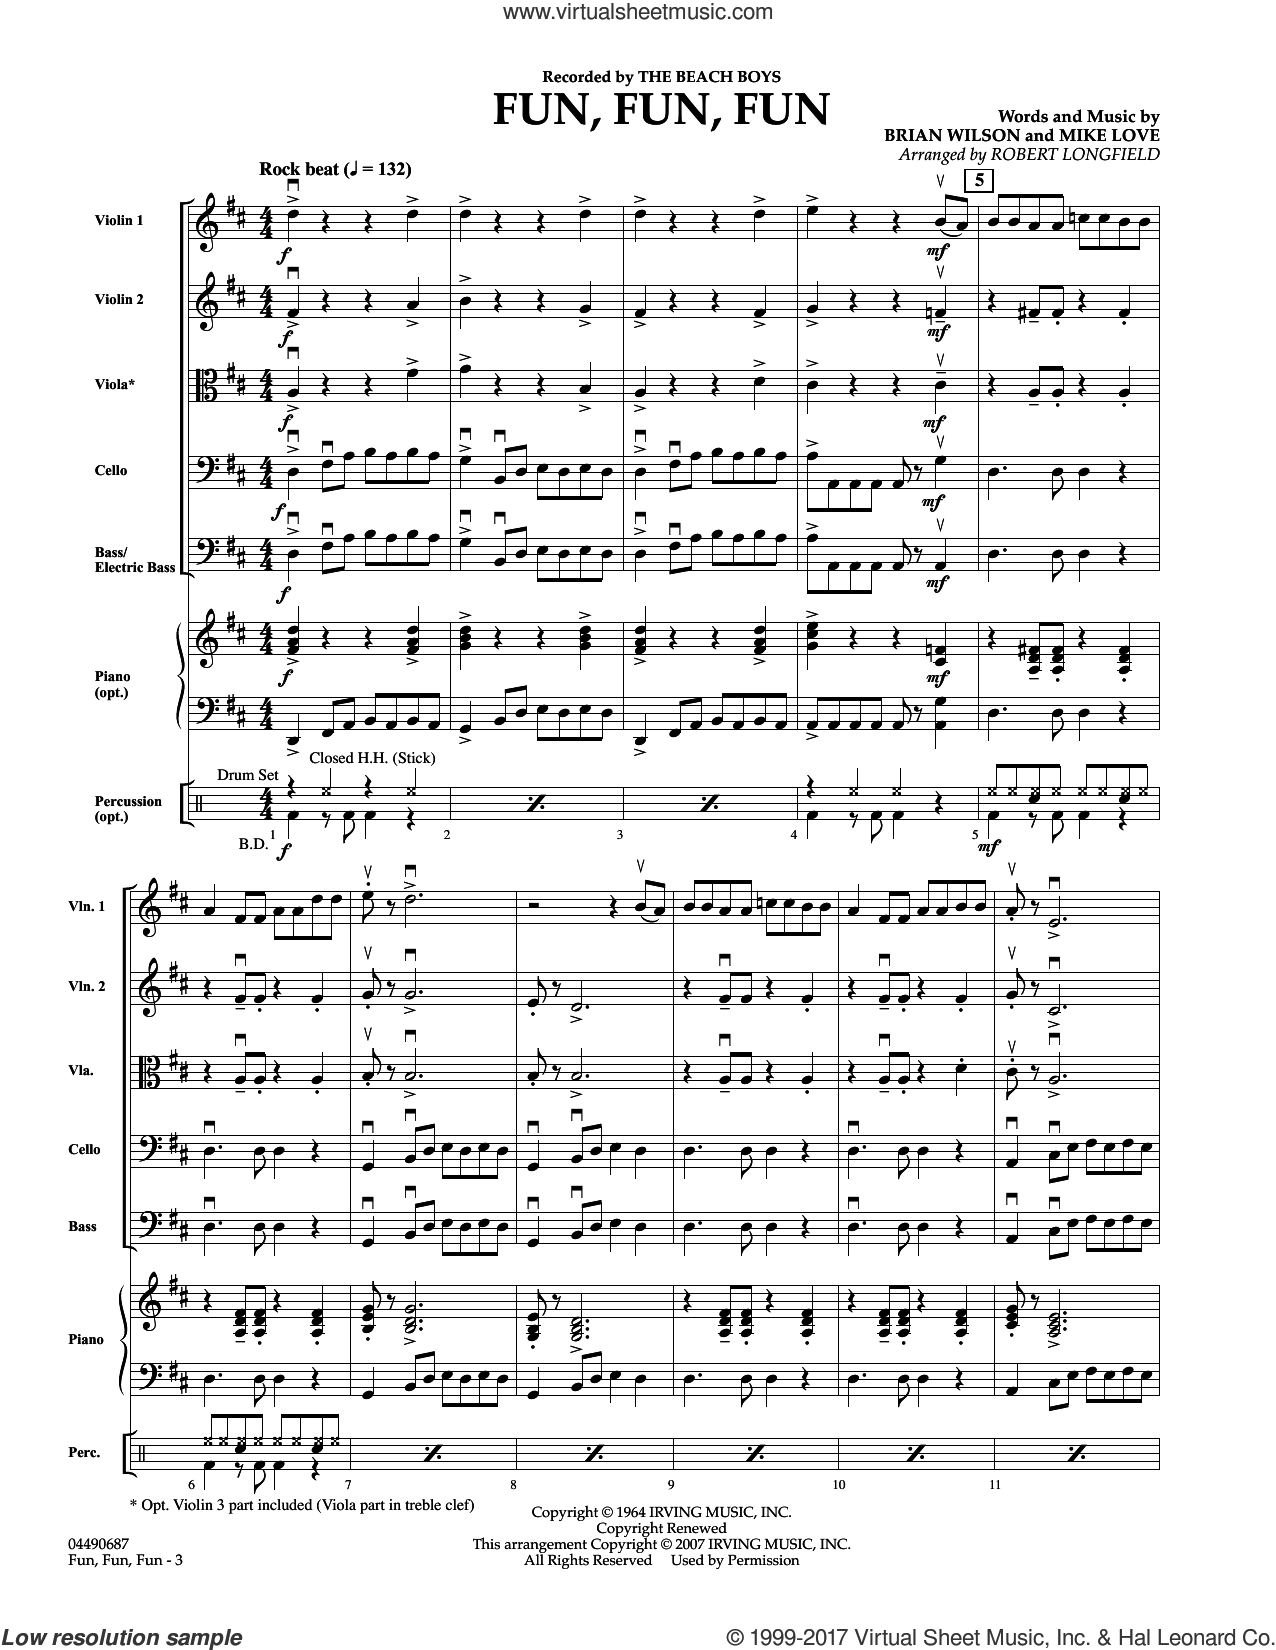 Fun, Fun, Fun (COMPLETE) sheet music for orchestra by The Beach Boys, Brian Wilson and Robert Longfield, intermediate orchestra. Score Image Preview.